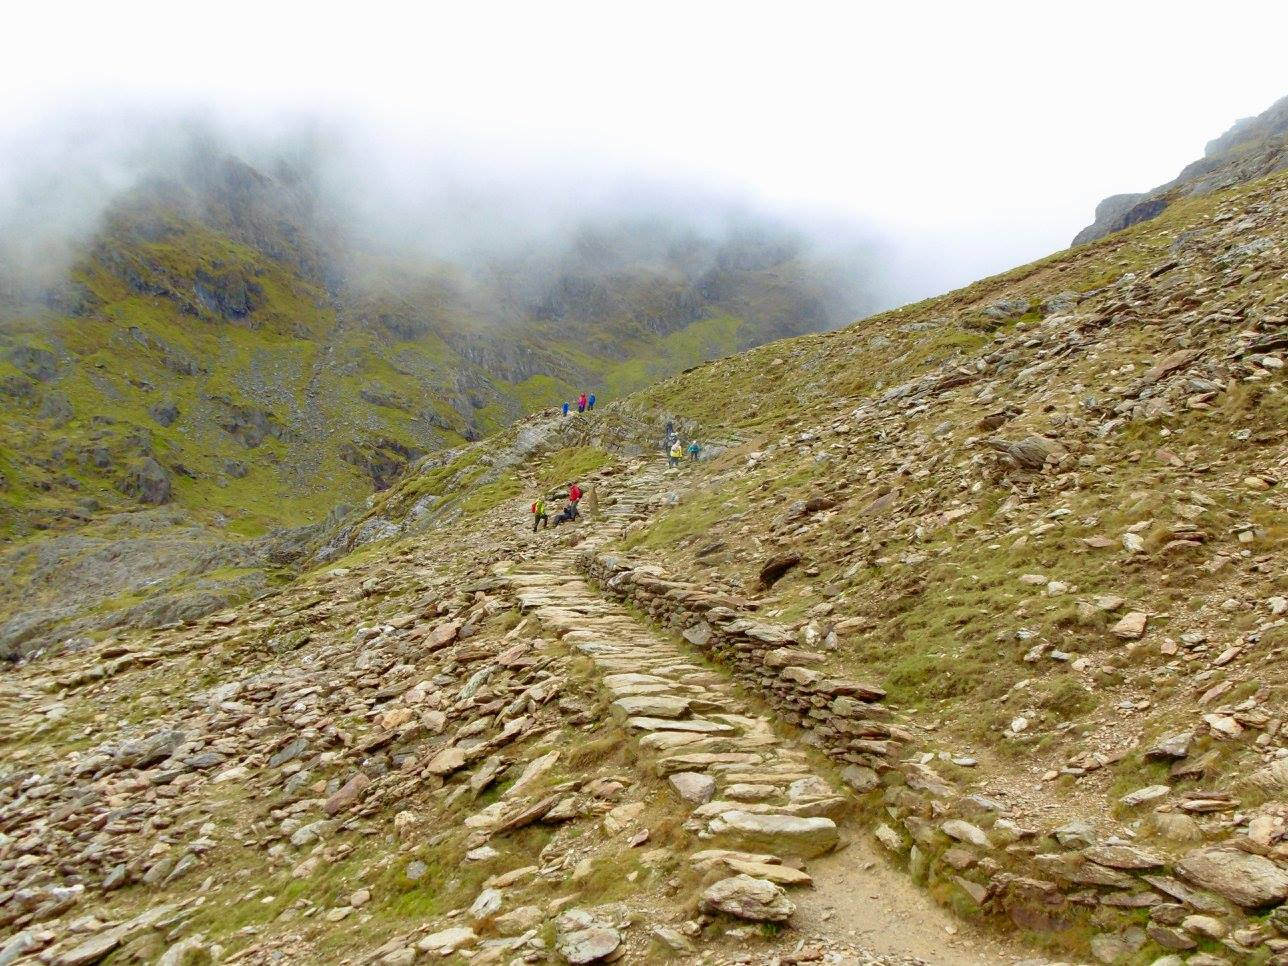 Looking up toward the summit of Snowdon, with low cloud hanging around.